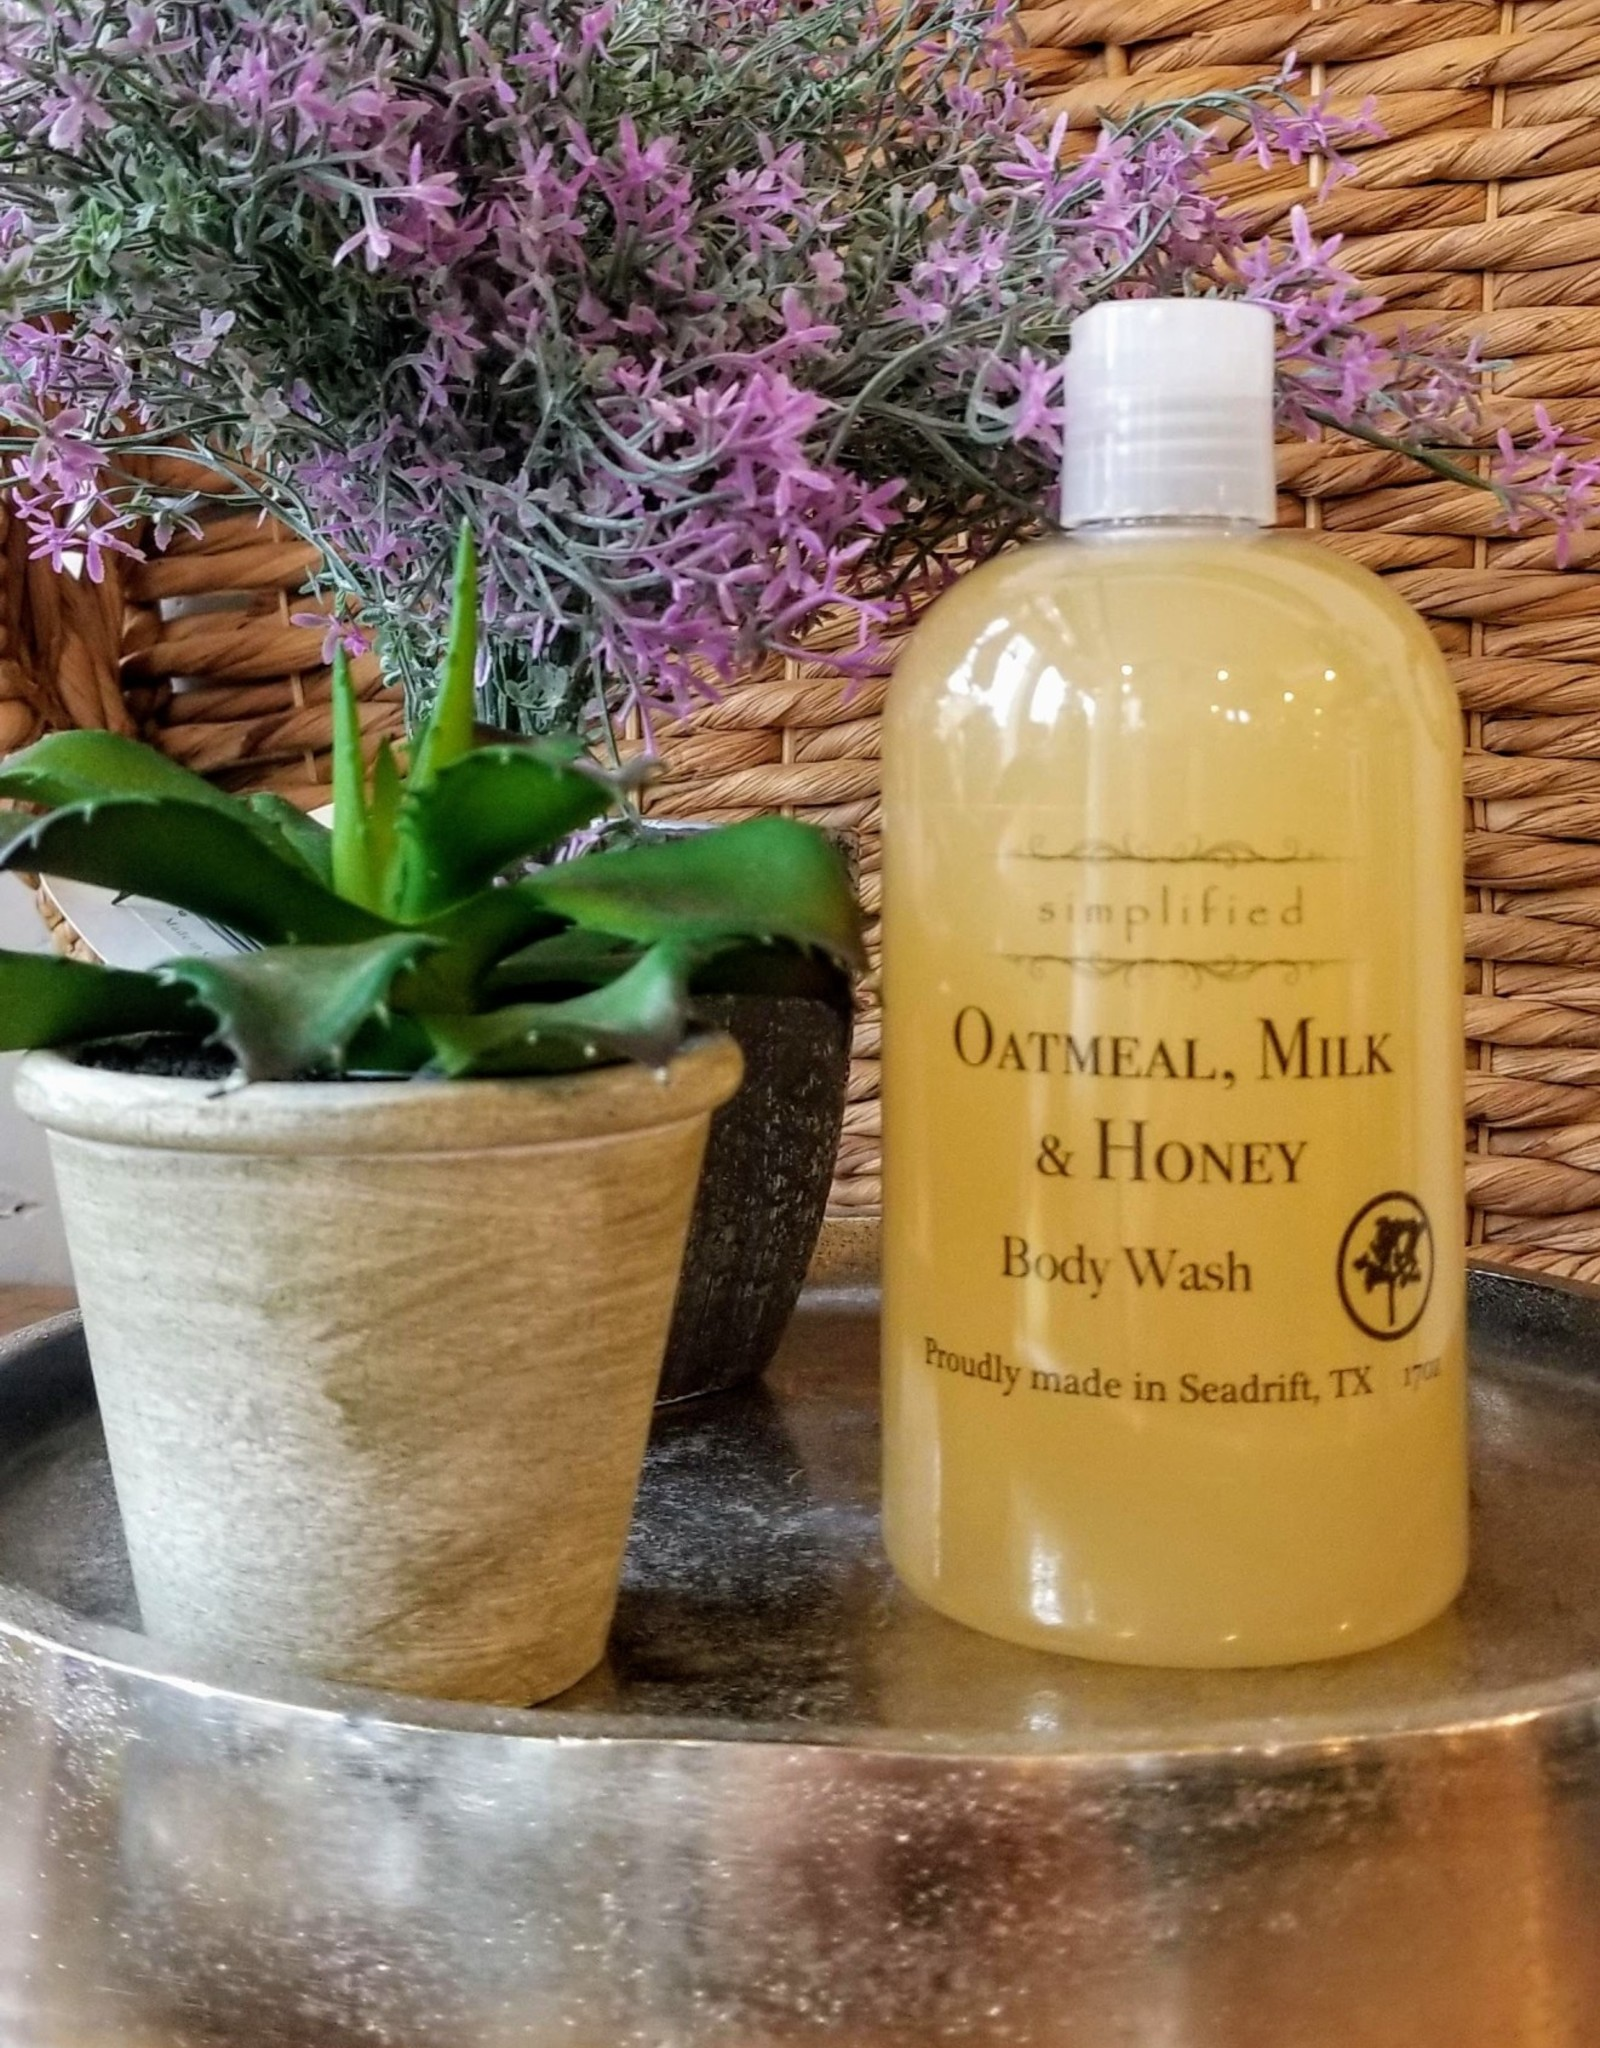 Simplified Soap Body Wash - Oatmeal, Milk, & Honey